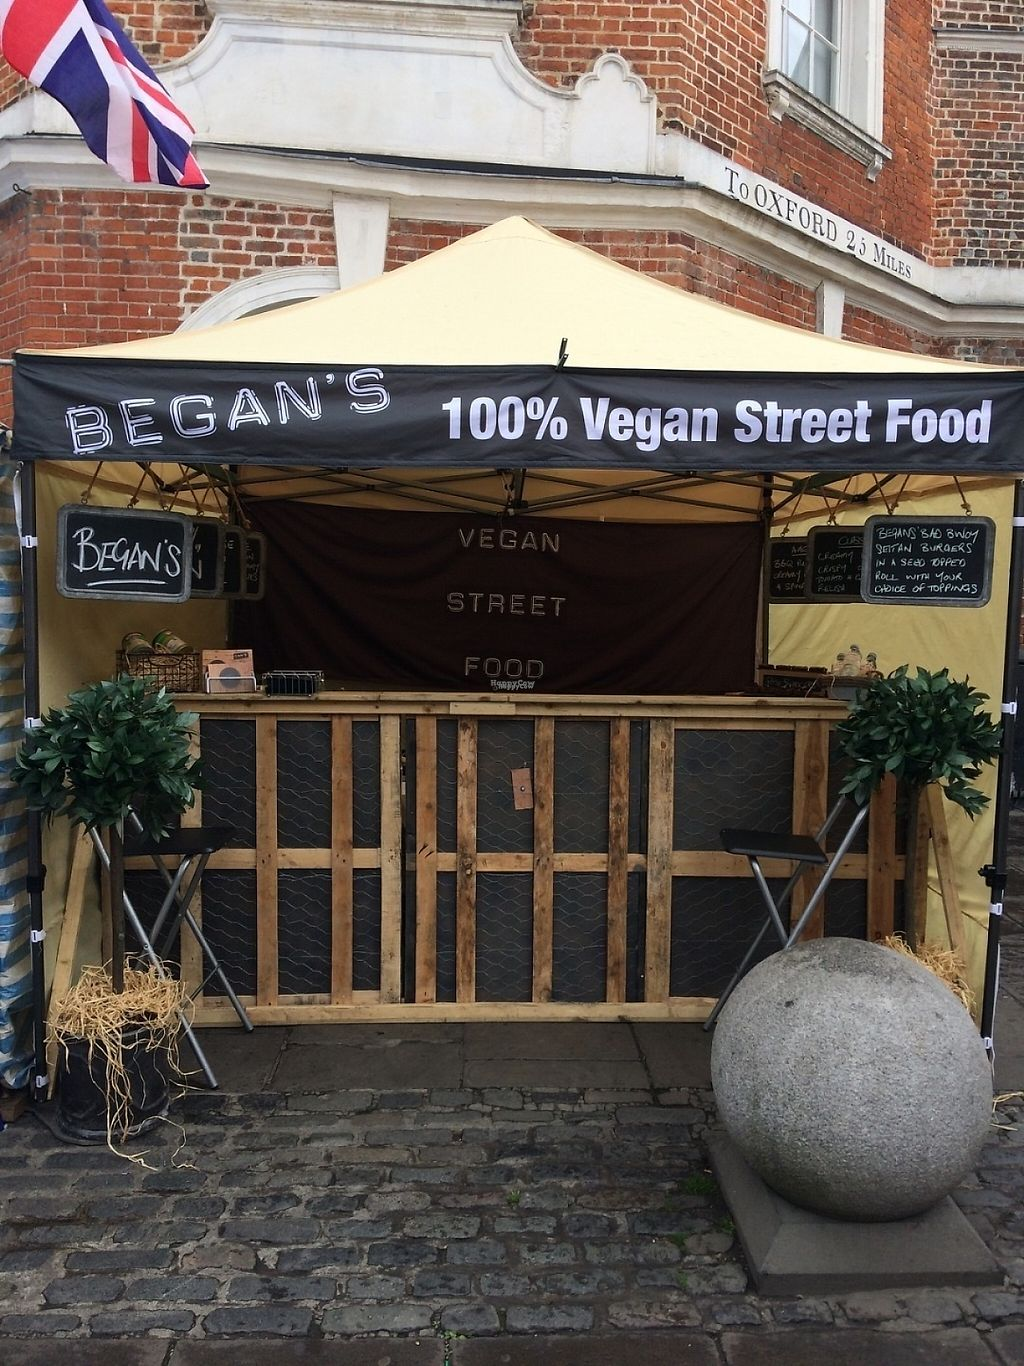 """Photo of Began's - Food Stall  by <a href=""""/members/profile/RebeccaJean-Baptiste"""">RebeccaJean-Baptiste</a> <br/>Stall <br/> April 30, 2017  - <a href='/contact/abuse/image/84084/254083'>Report</a>"""